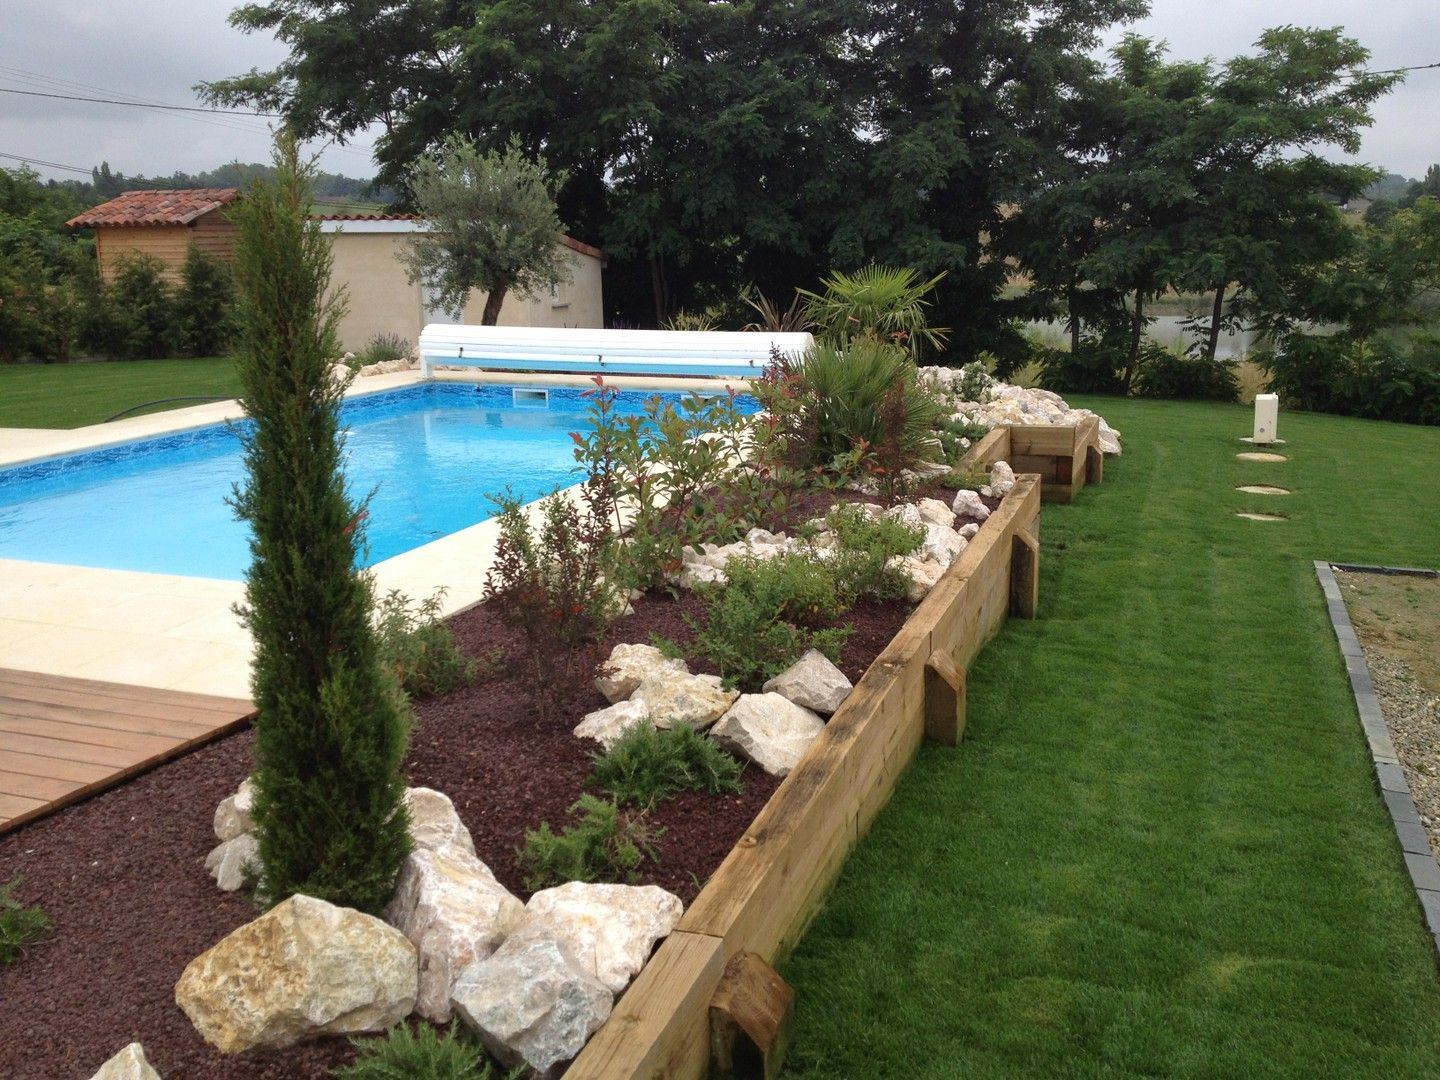 amenagement jardin et piscine dootdadoocom idees de With superb photo d amenagement piscine 4 amenagement piscine exterieure avec jardin flore boreale